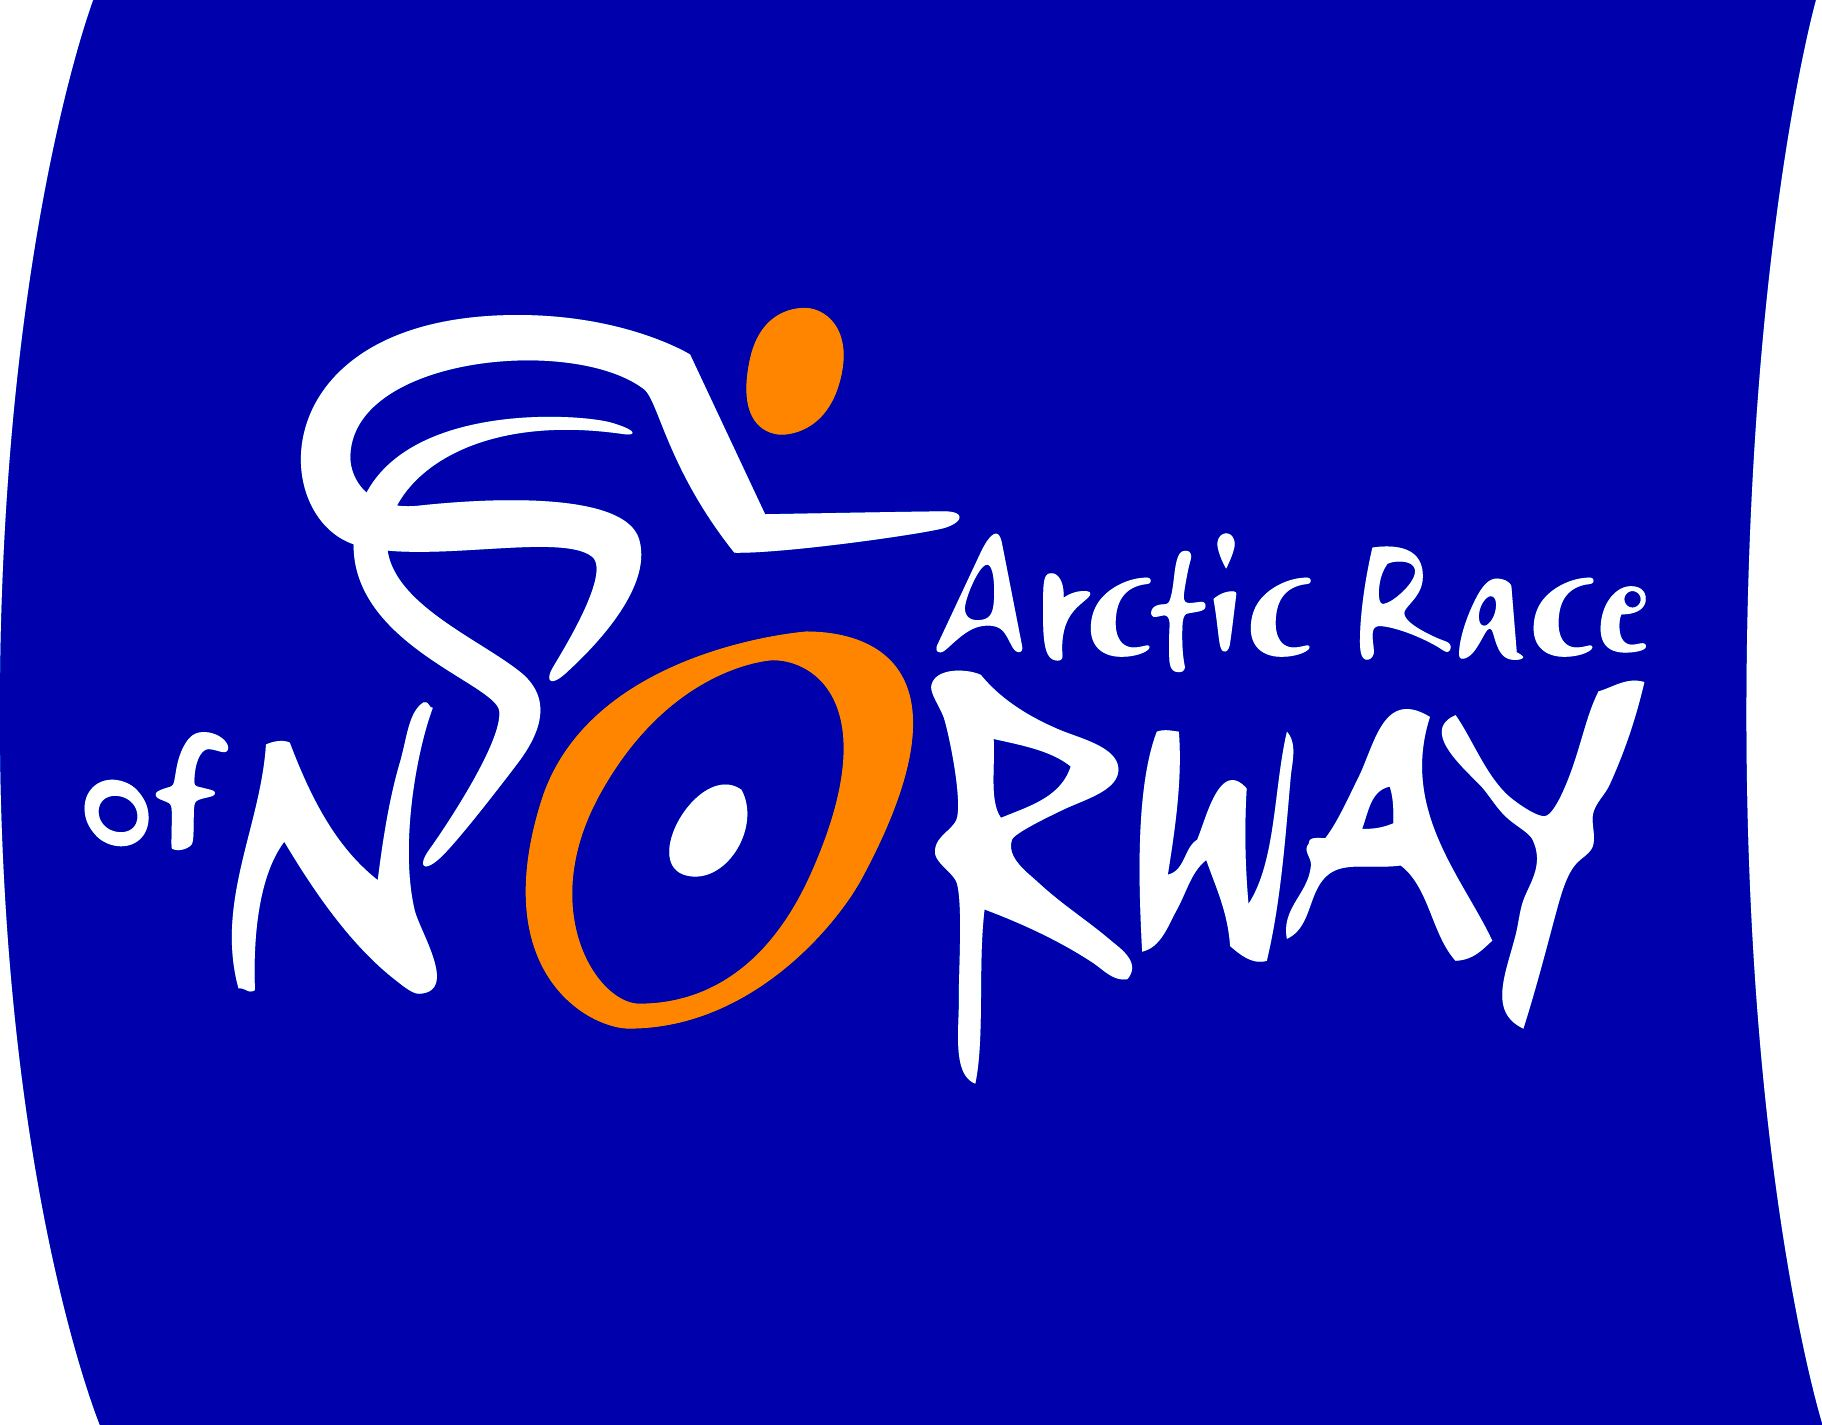 Snart Arctic Race of Norway!